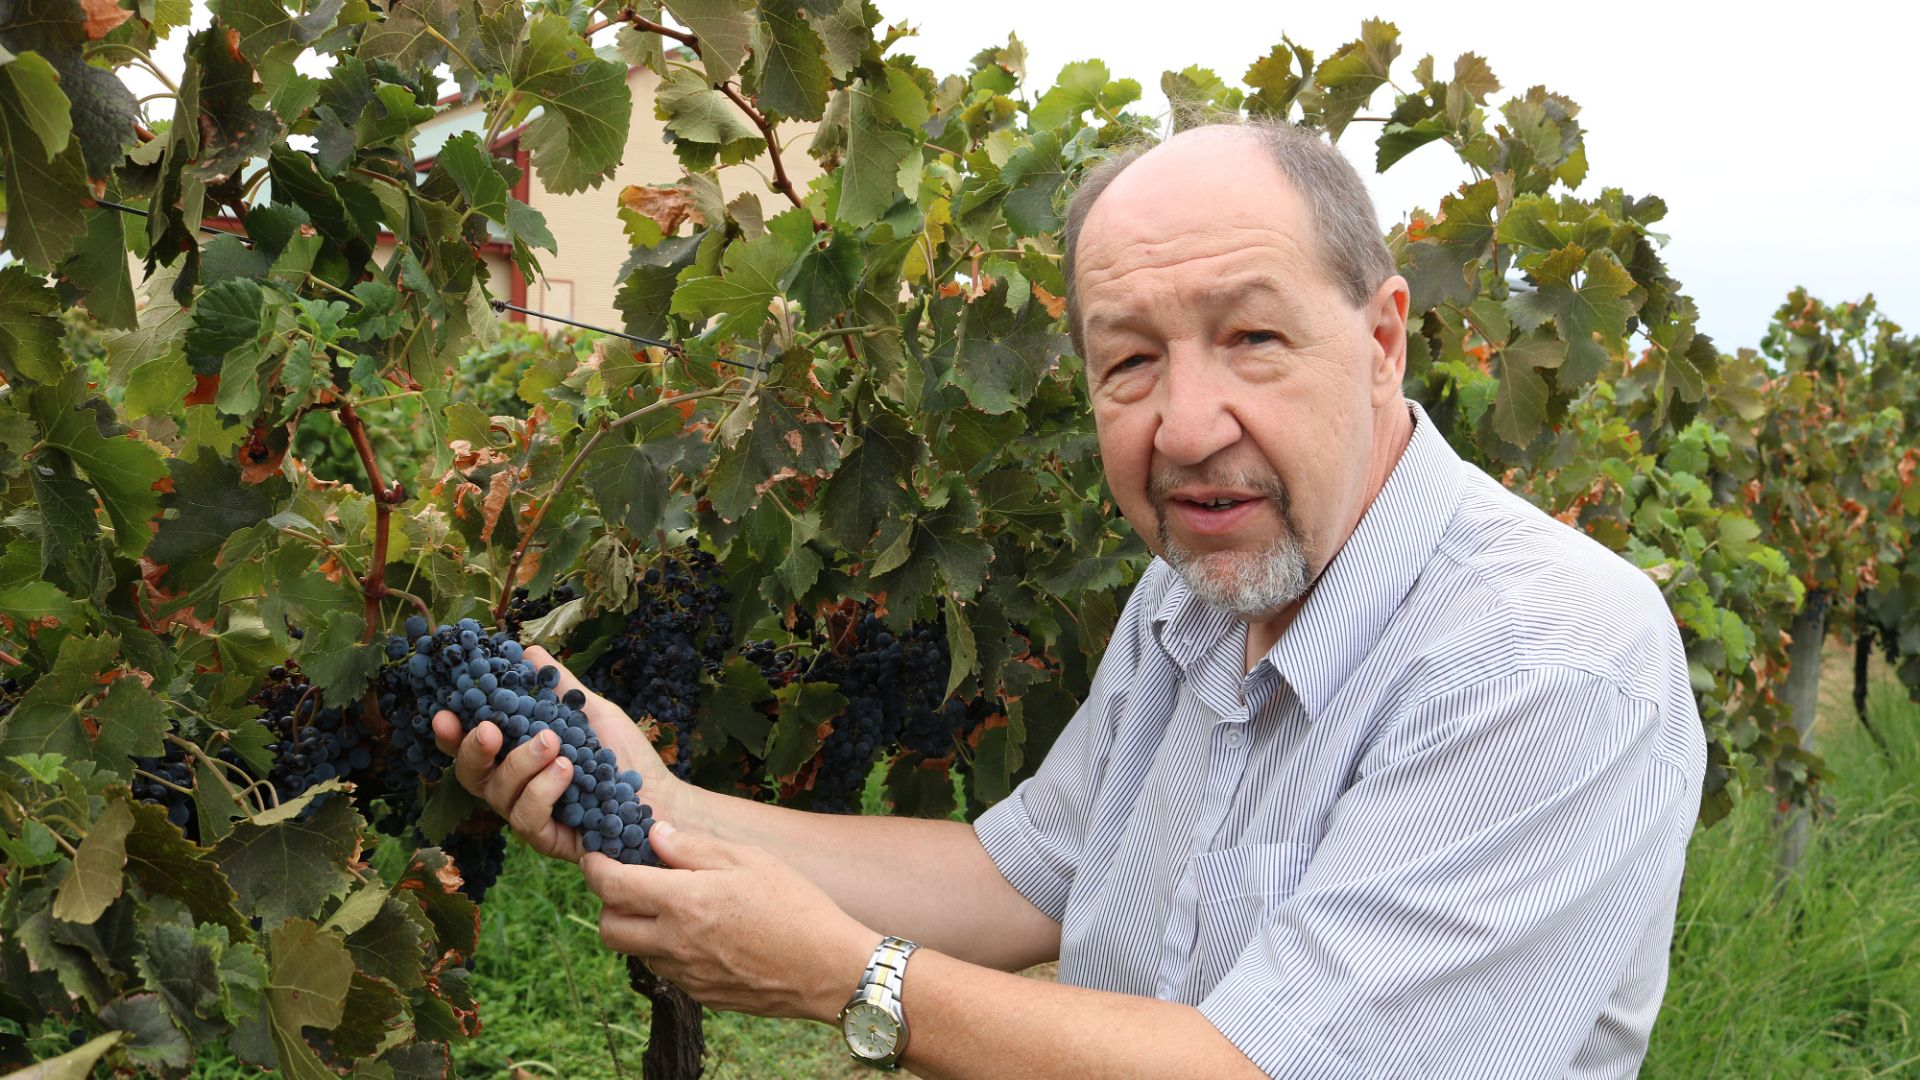 CSU Research: Measuring bunch rot impact on wine quality